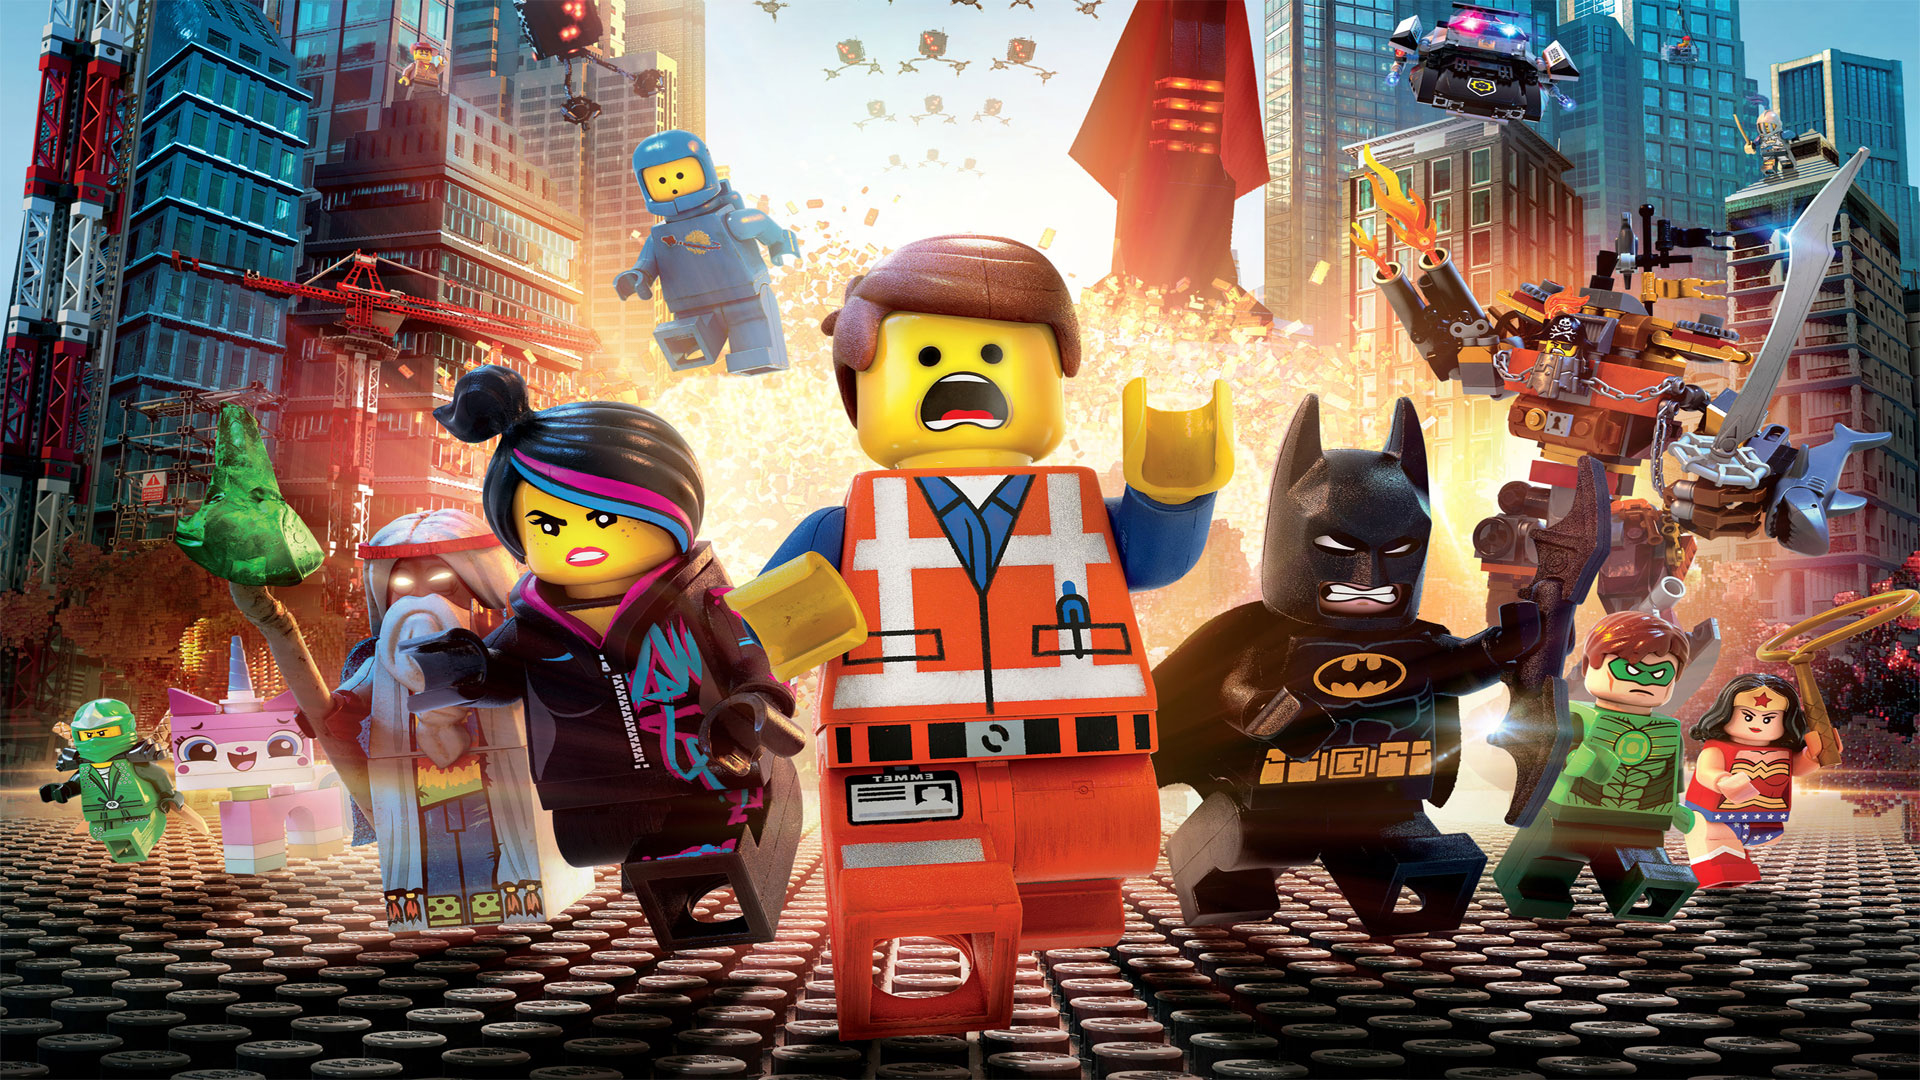 lego_movie_from_2014-1765.jpg